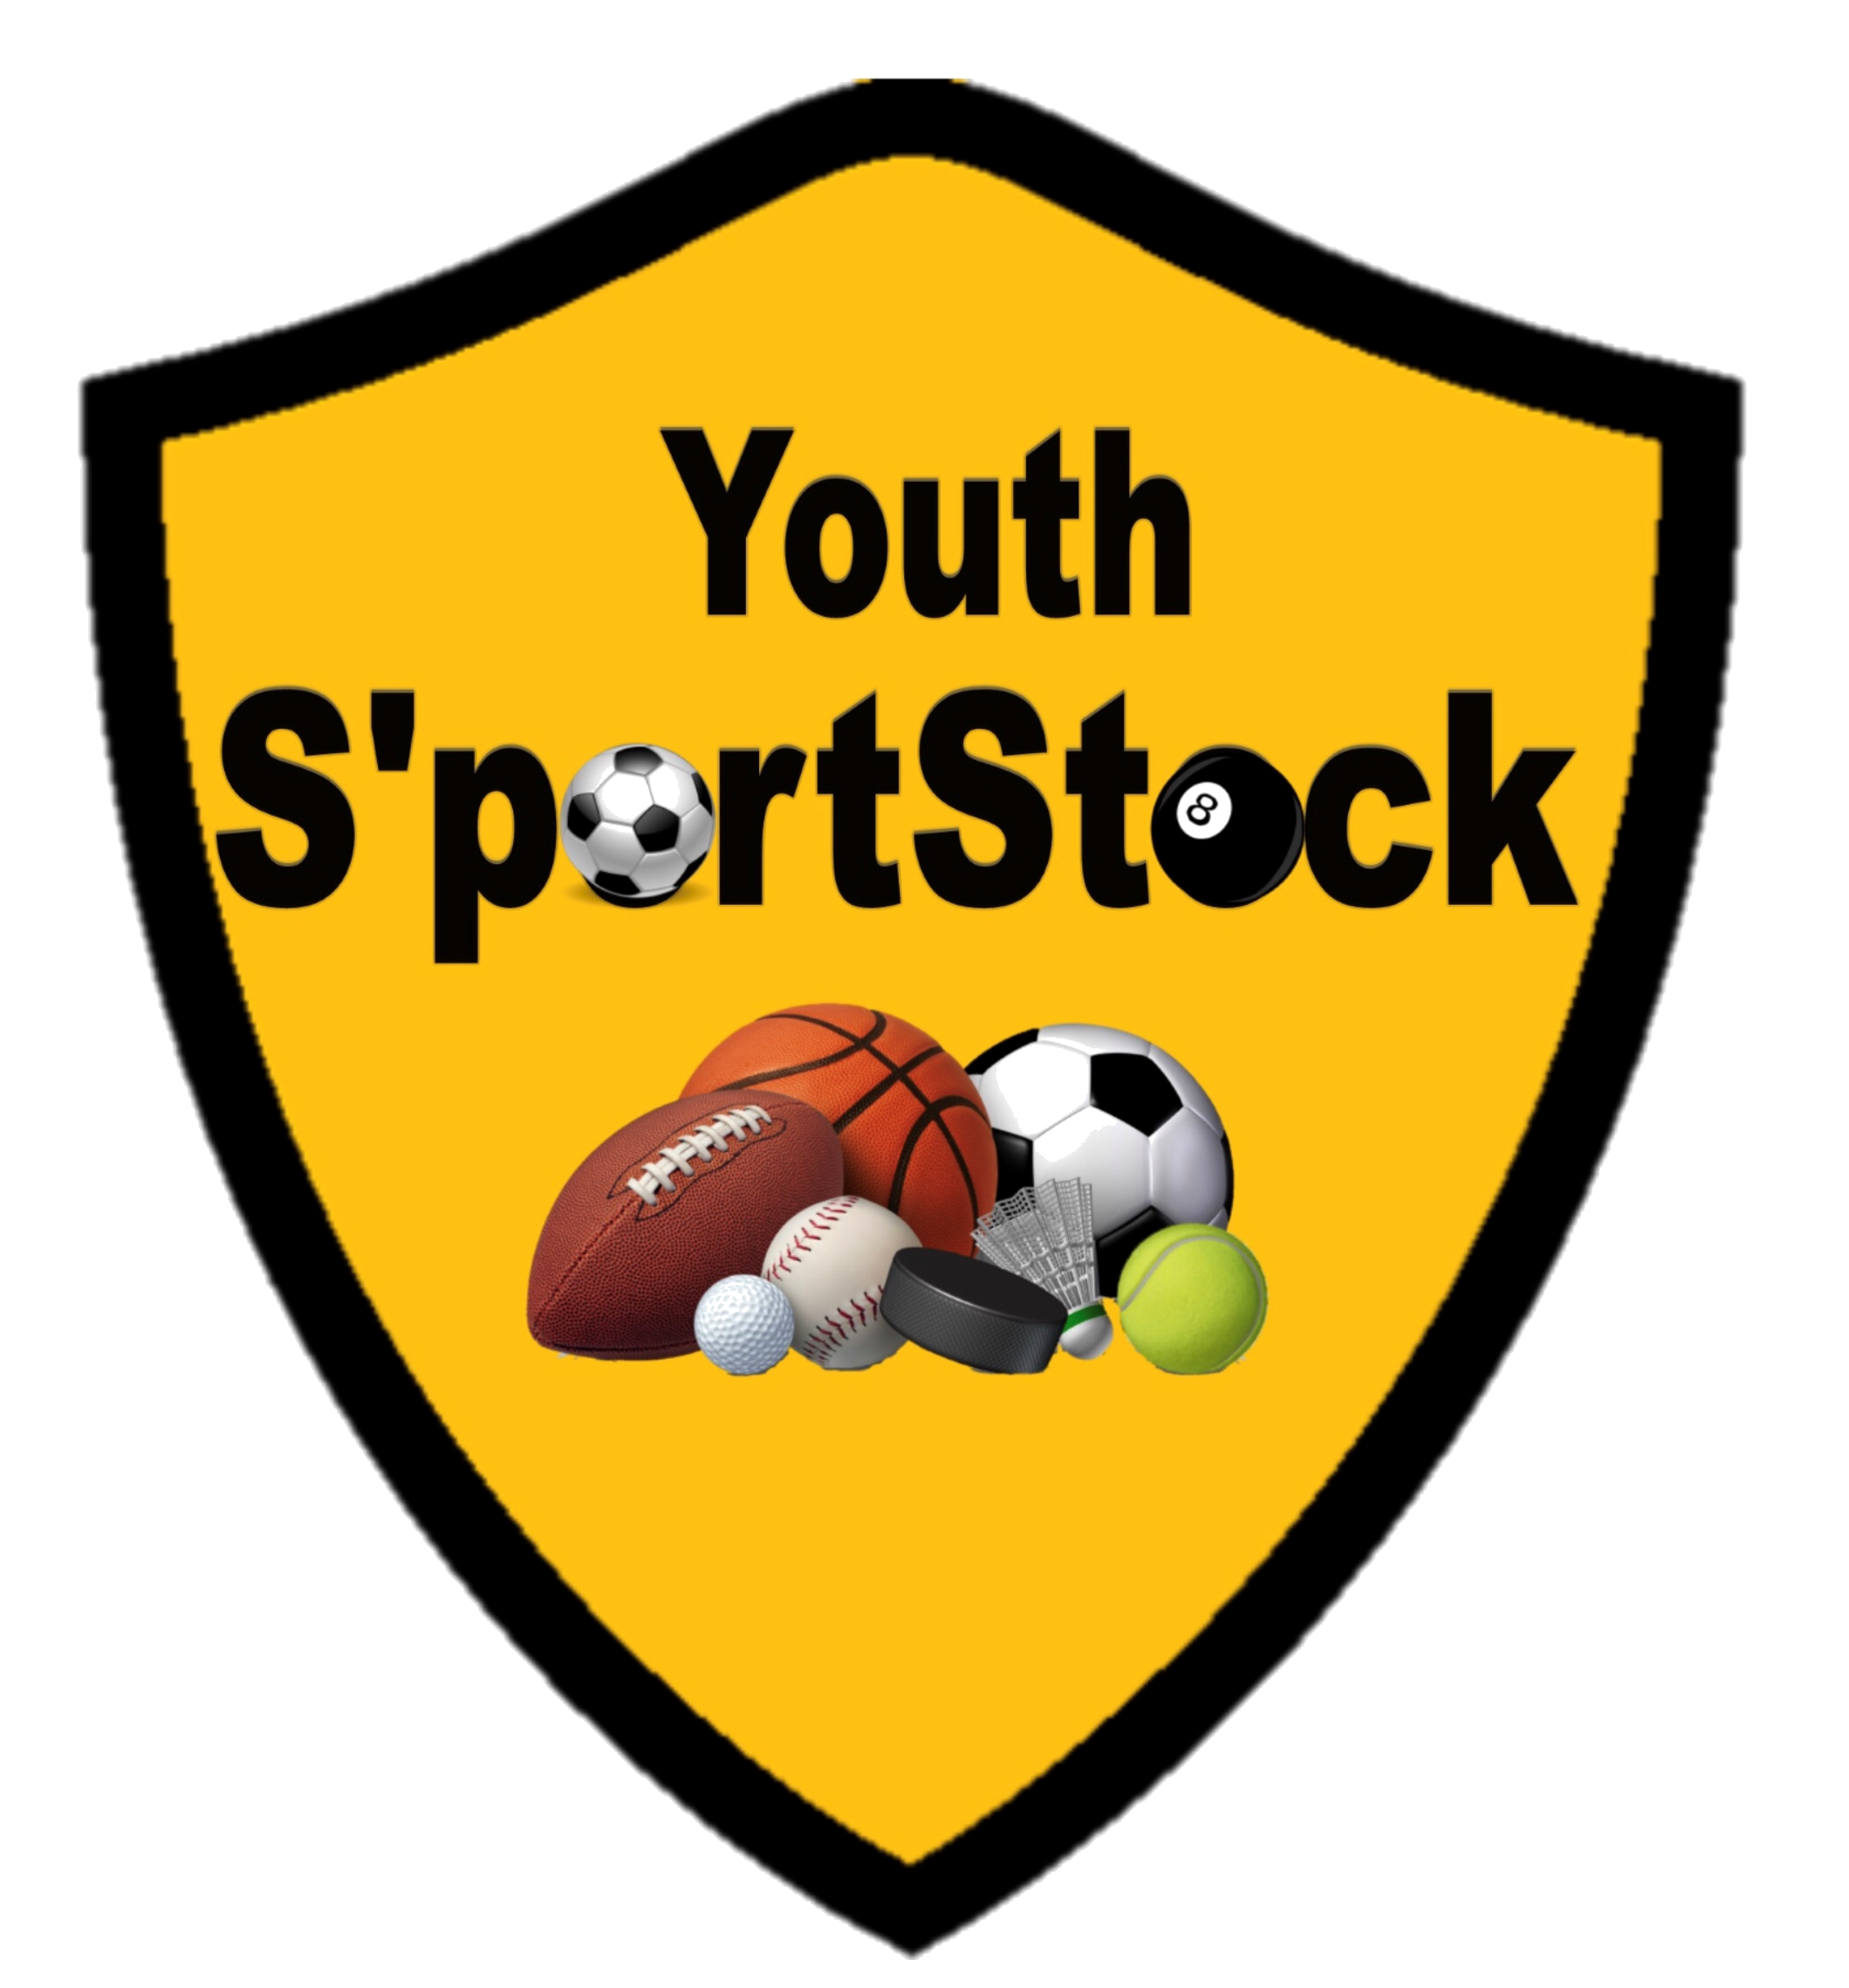 Youth S'portstock